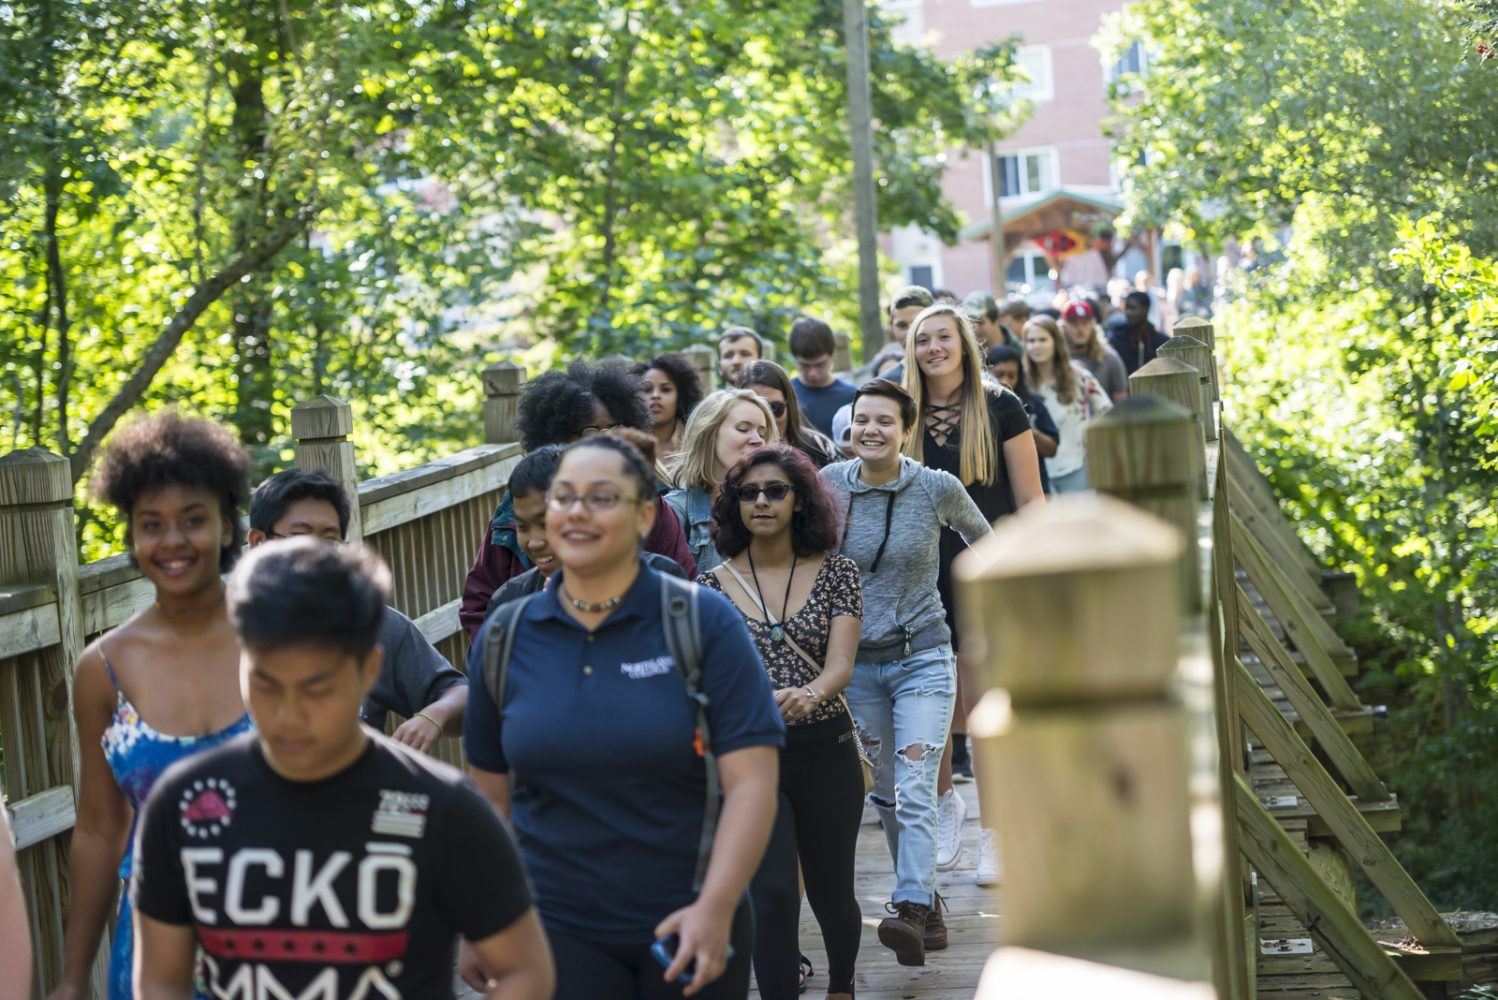 Northland College Class of 2021 students cross the bridge as part of convocation.